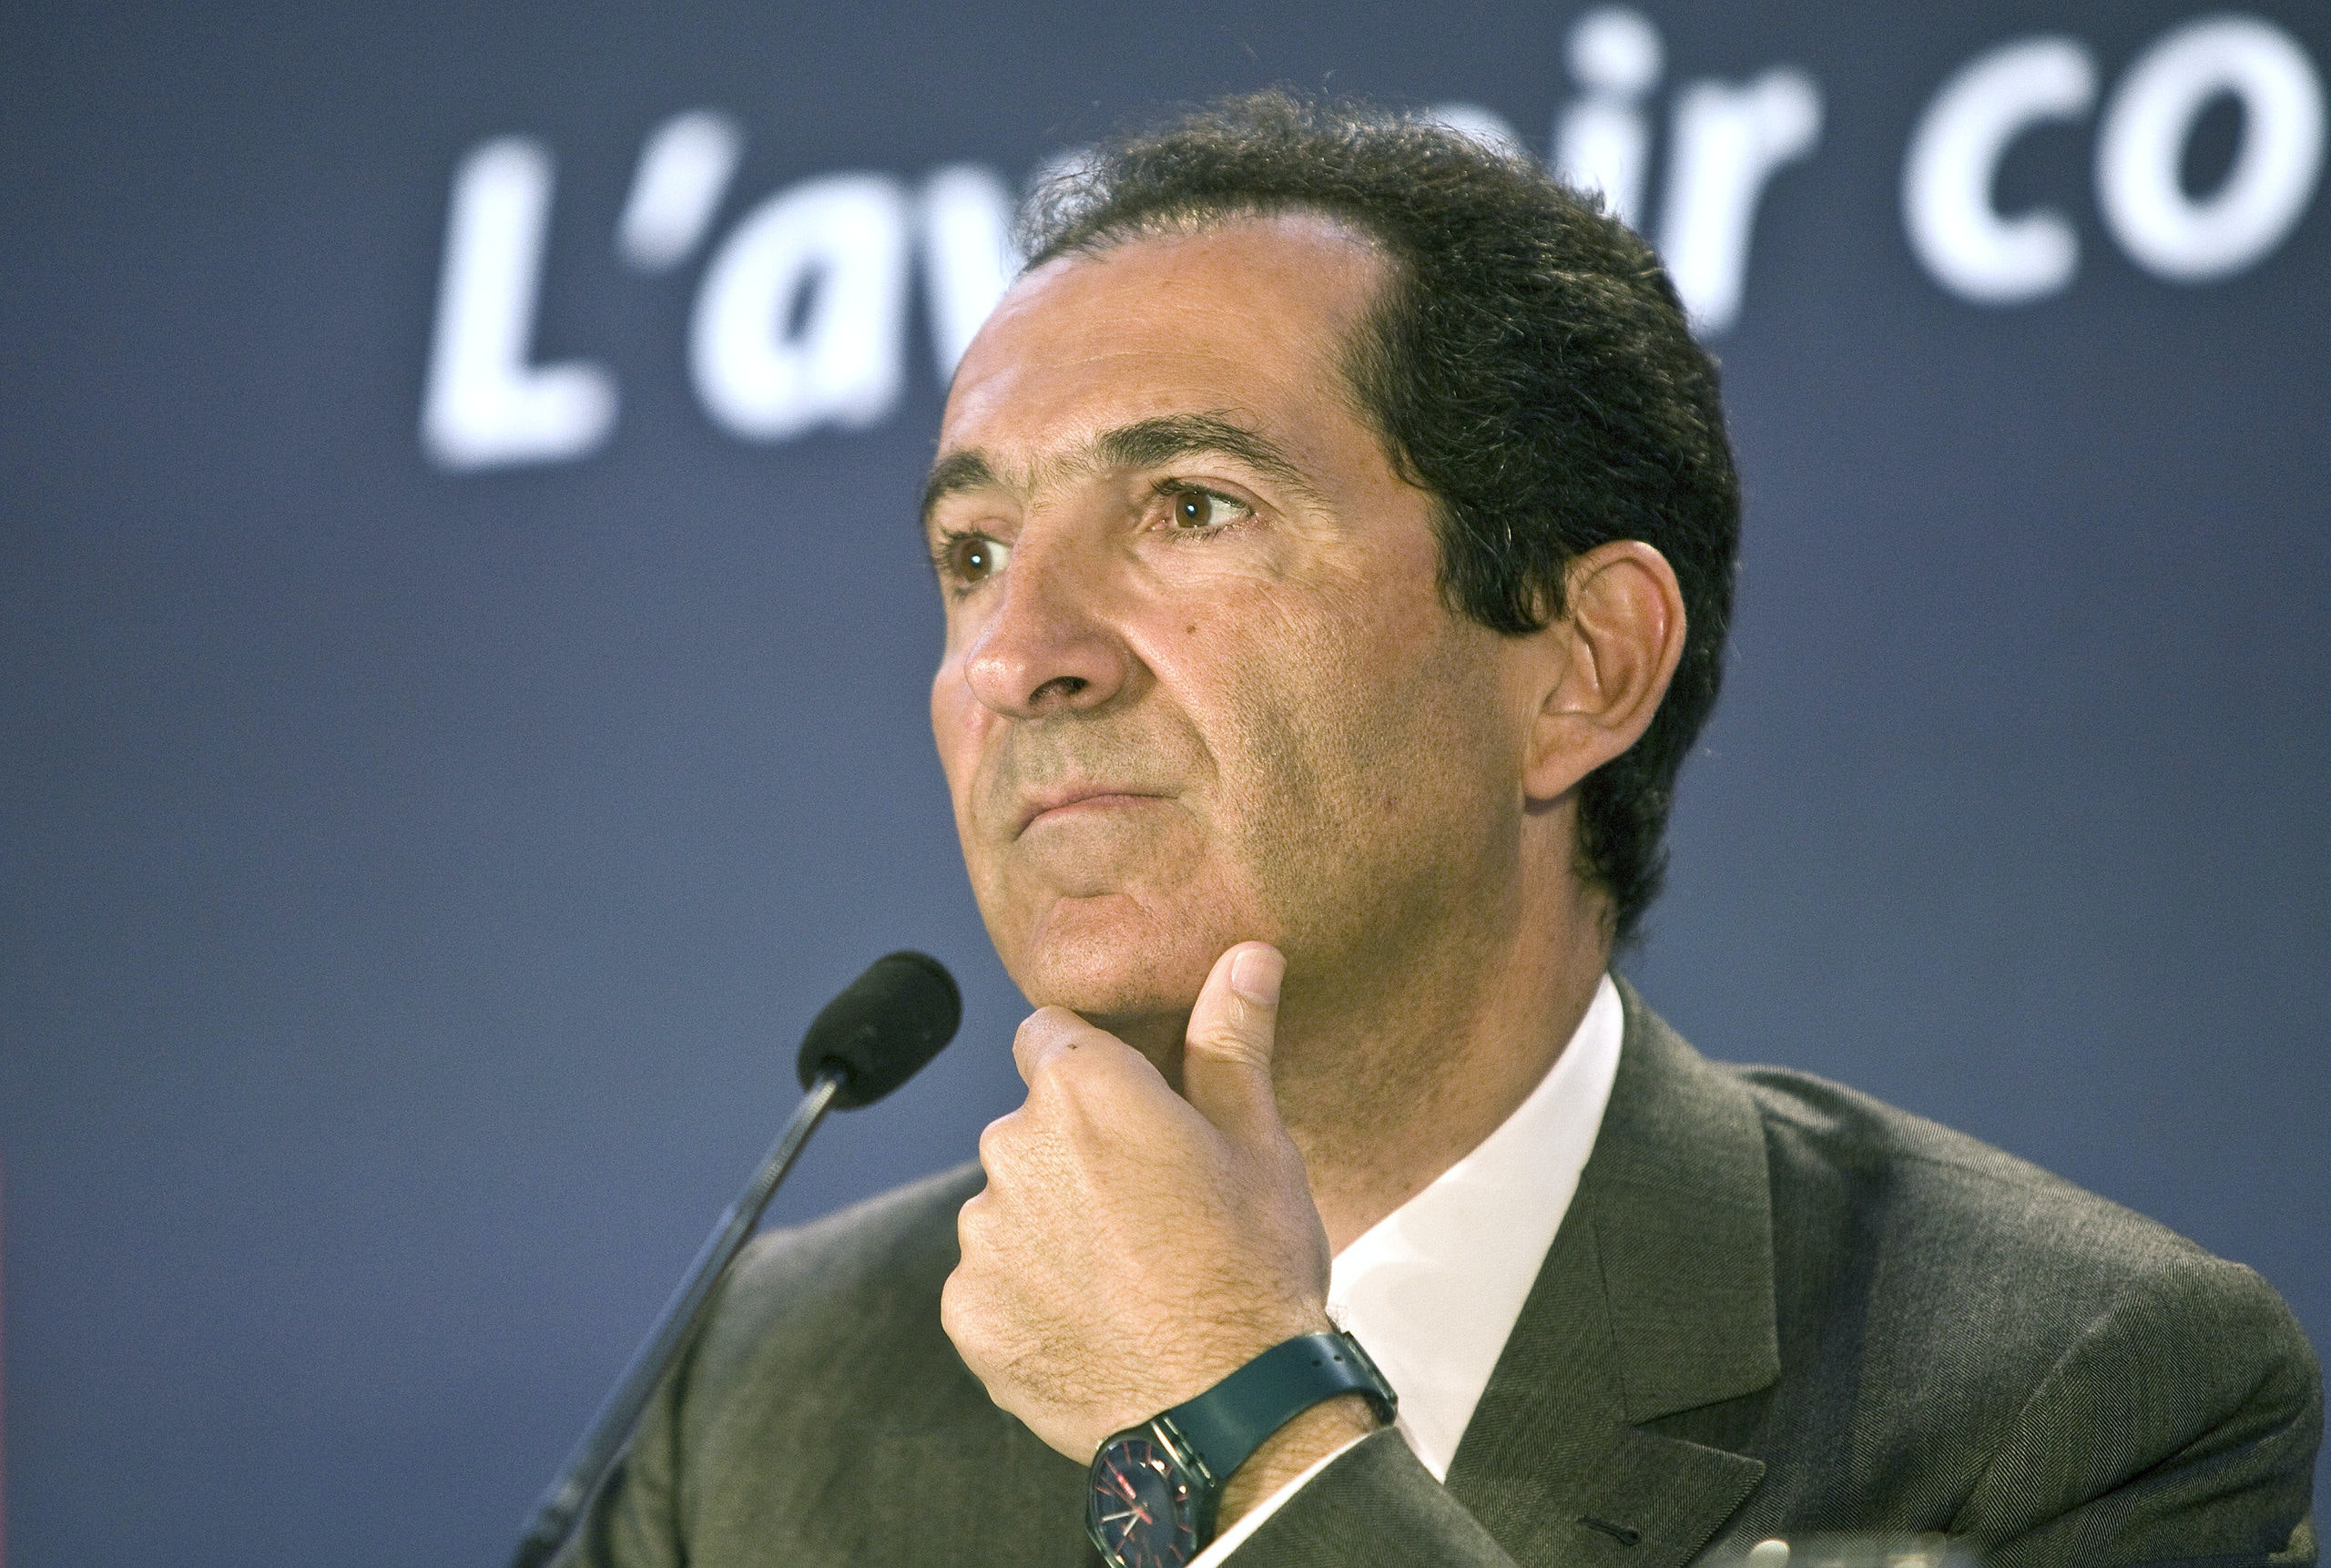 Patrick Drahi, billionaire and chairman of Altice SA, pauses during a news conference in Paris, France, on Monday, April 7, 2014. Billionaire Patrick Drahi's Altice SA won the bidding contest for Vivendi SA's French phone unit SFR, beating a government-backed offer from Bouygues SA by agreeing to a deal valued at more than 17 billion euros ($23 billion). Photographer: Ivan Guilbert/Bloomberg *** Local Caption *** Patrick Drahi